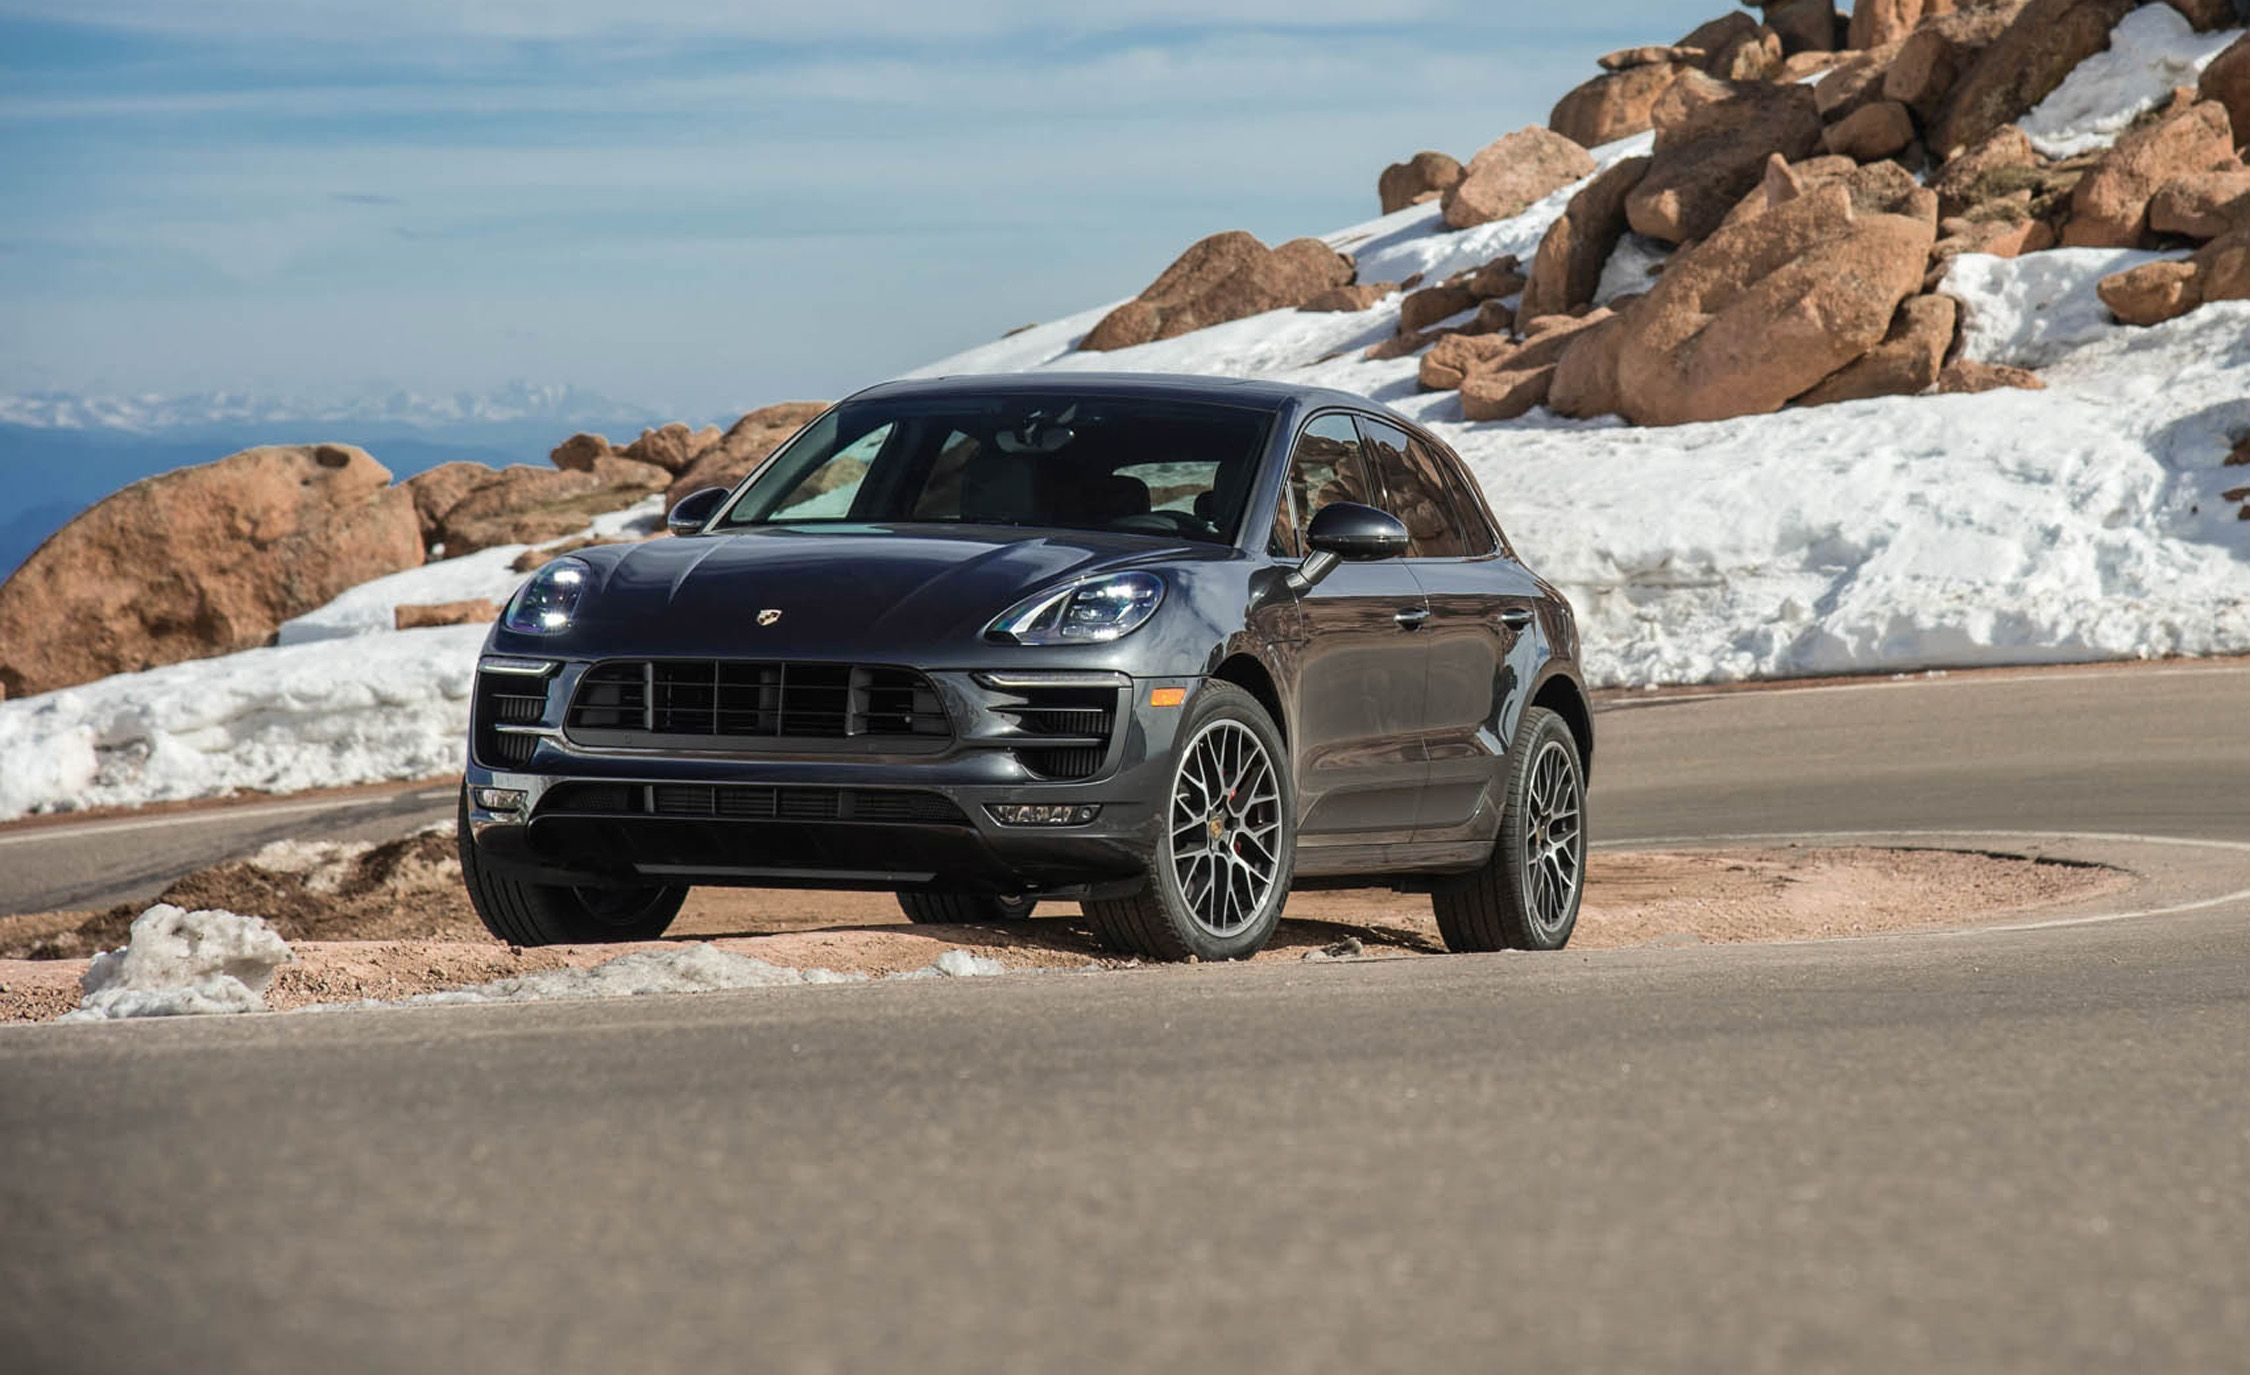 2018 Porsche Macan | In-Depth Model Review | Car and Driver